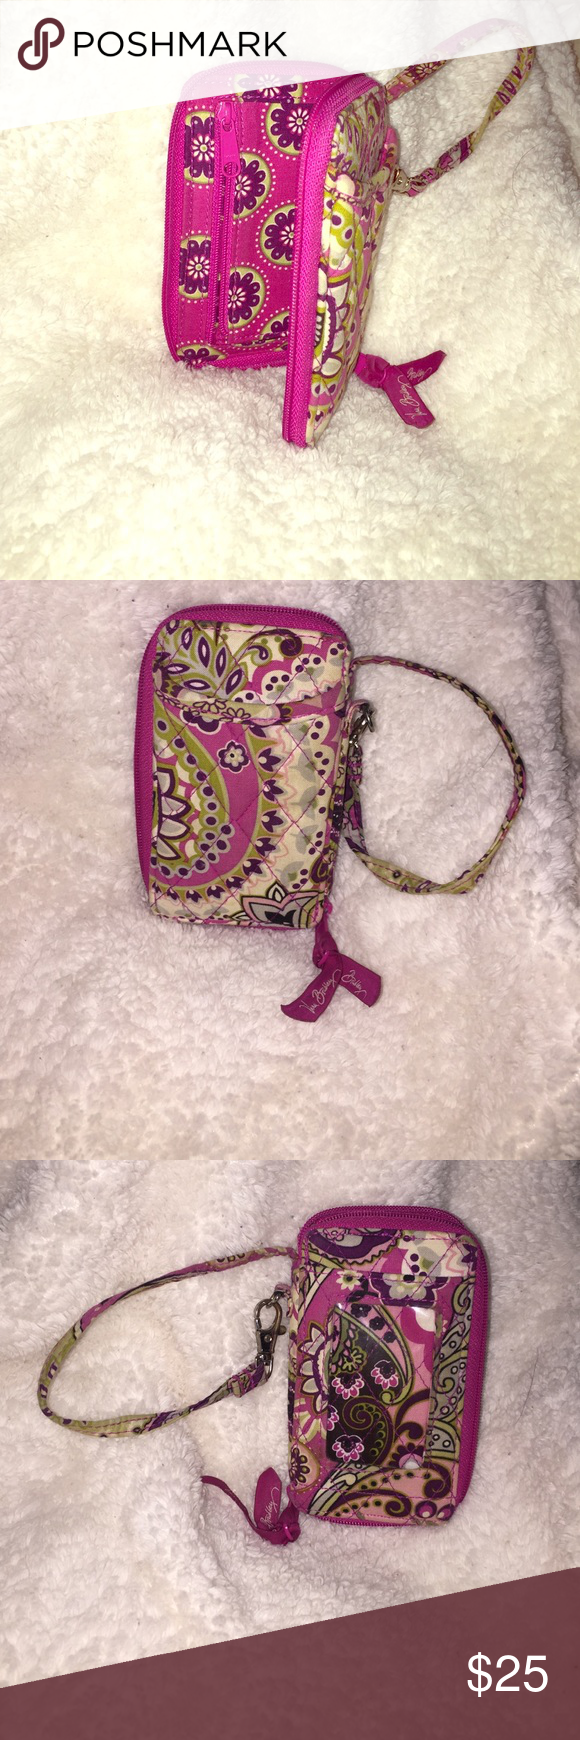 Vera Bradley zippered/key chain wallet/wristlet pink floral print, wristlet wallet. holds cards, cash, any type of smaller phones. Vera Bradley Bags Clutches & Wristlets